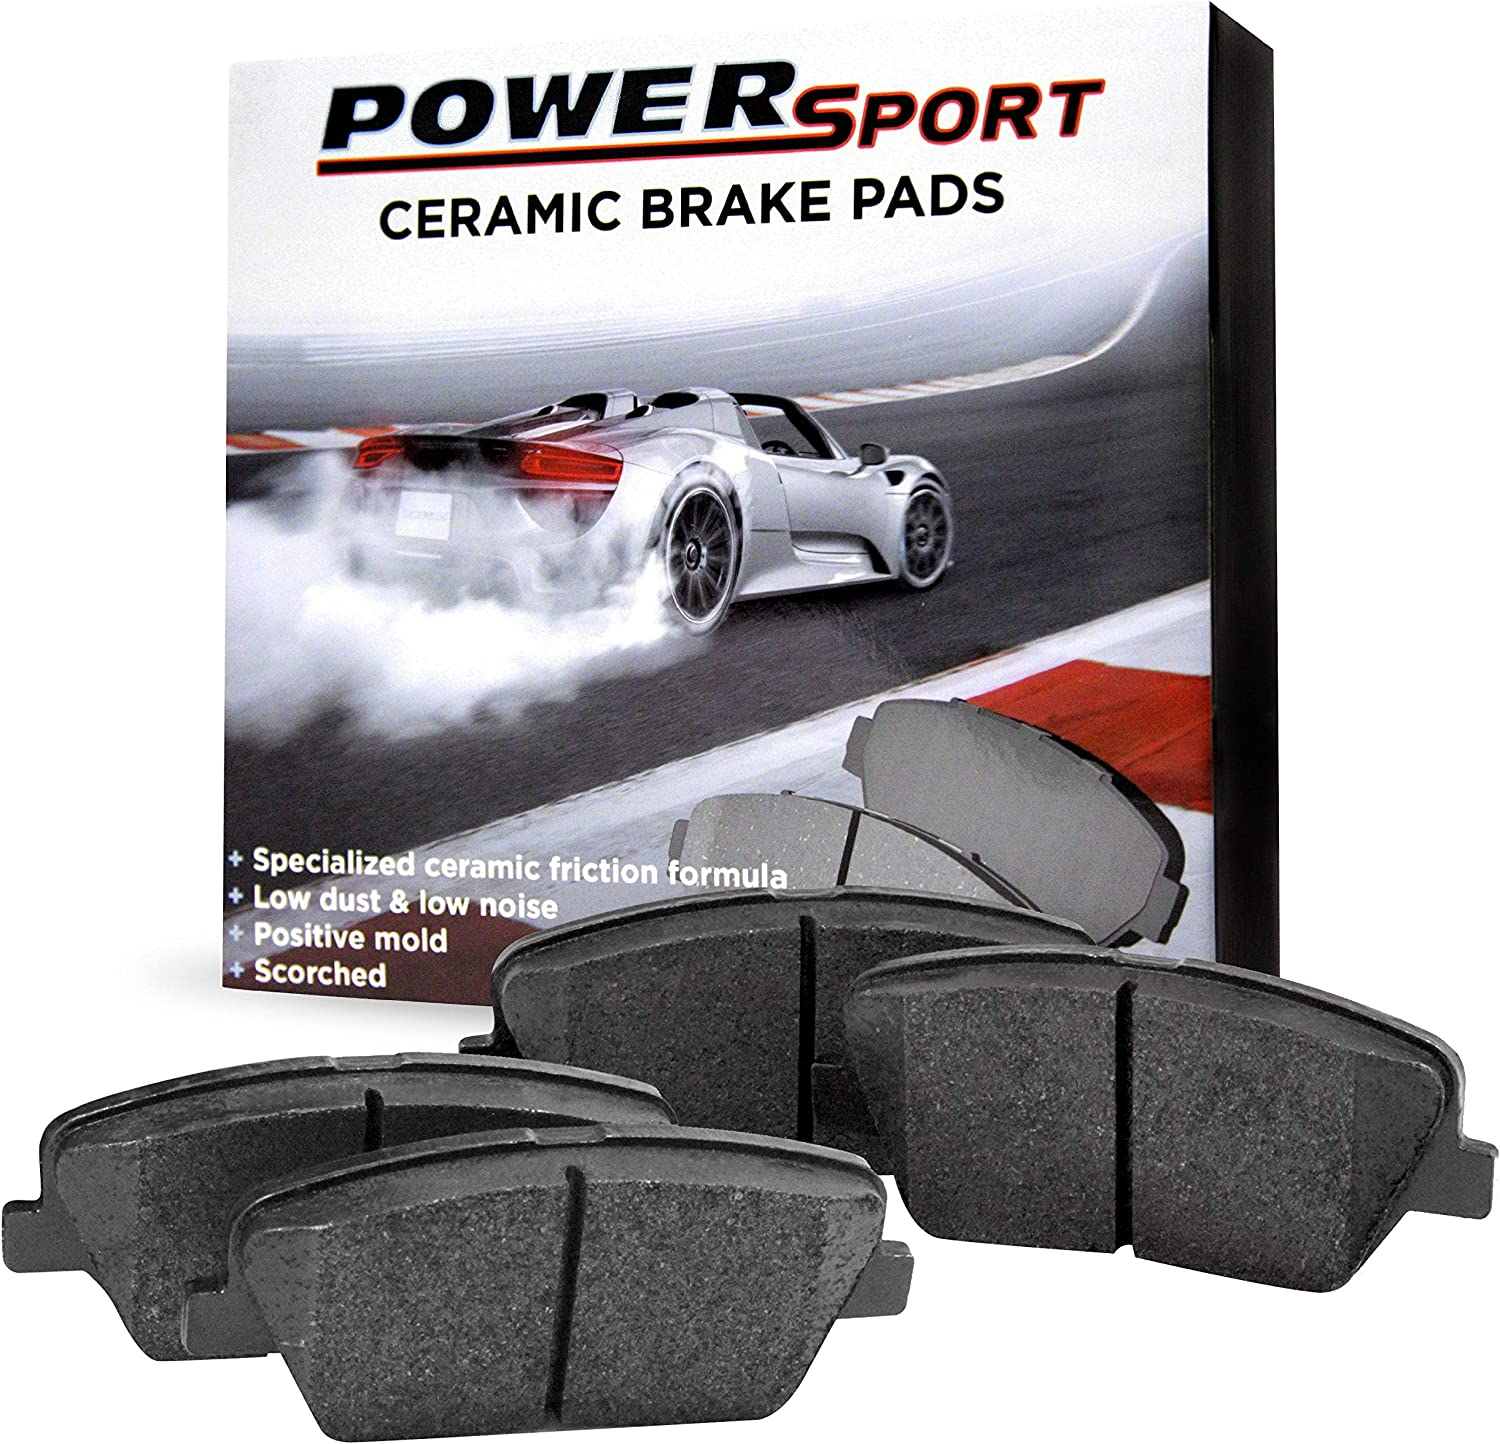 PowerSport Ceramic Series Brake Pad With Rubber High order Shi Free shipping on posting reviews Steel